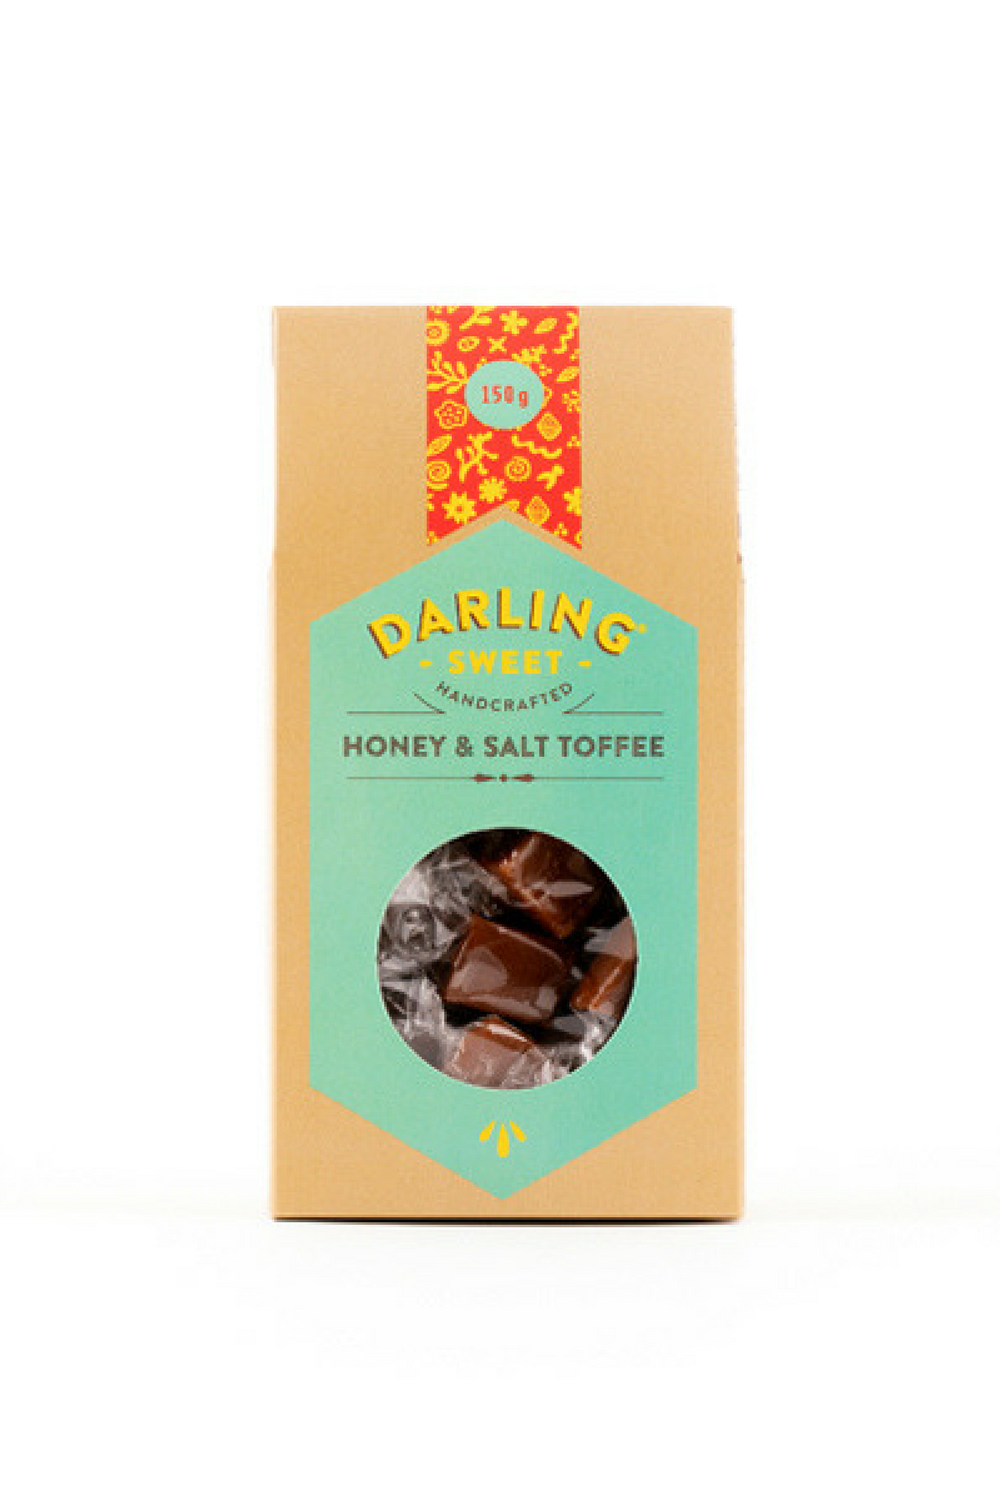 Darling Toffee from Three Marys